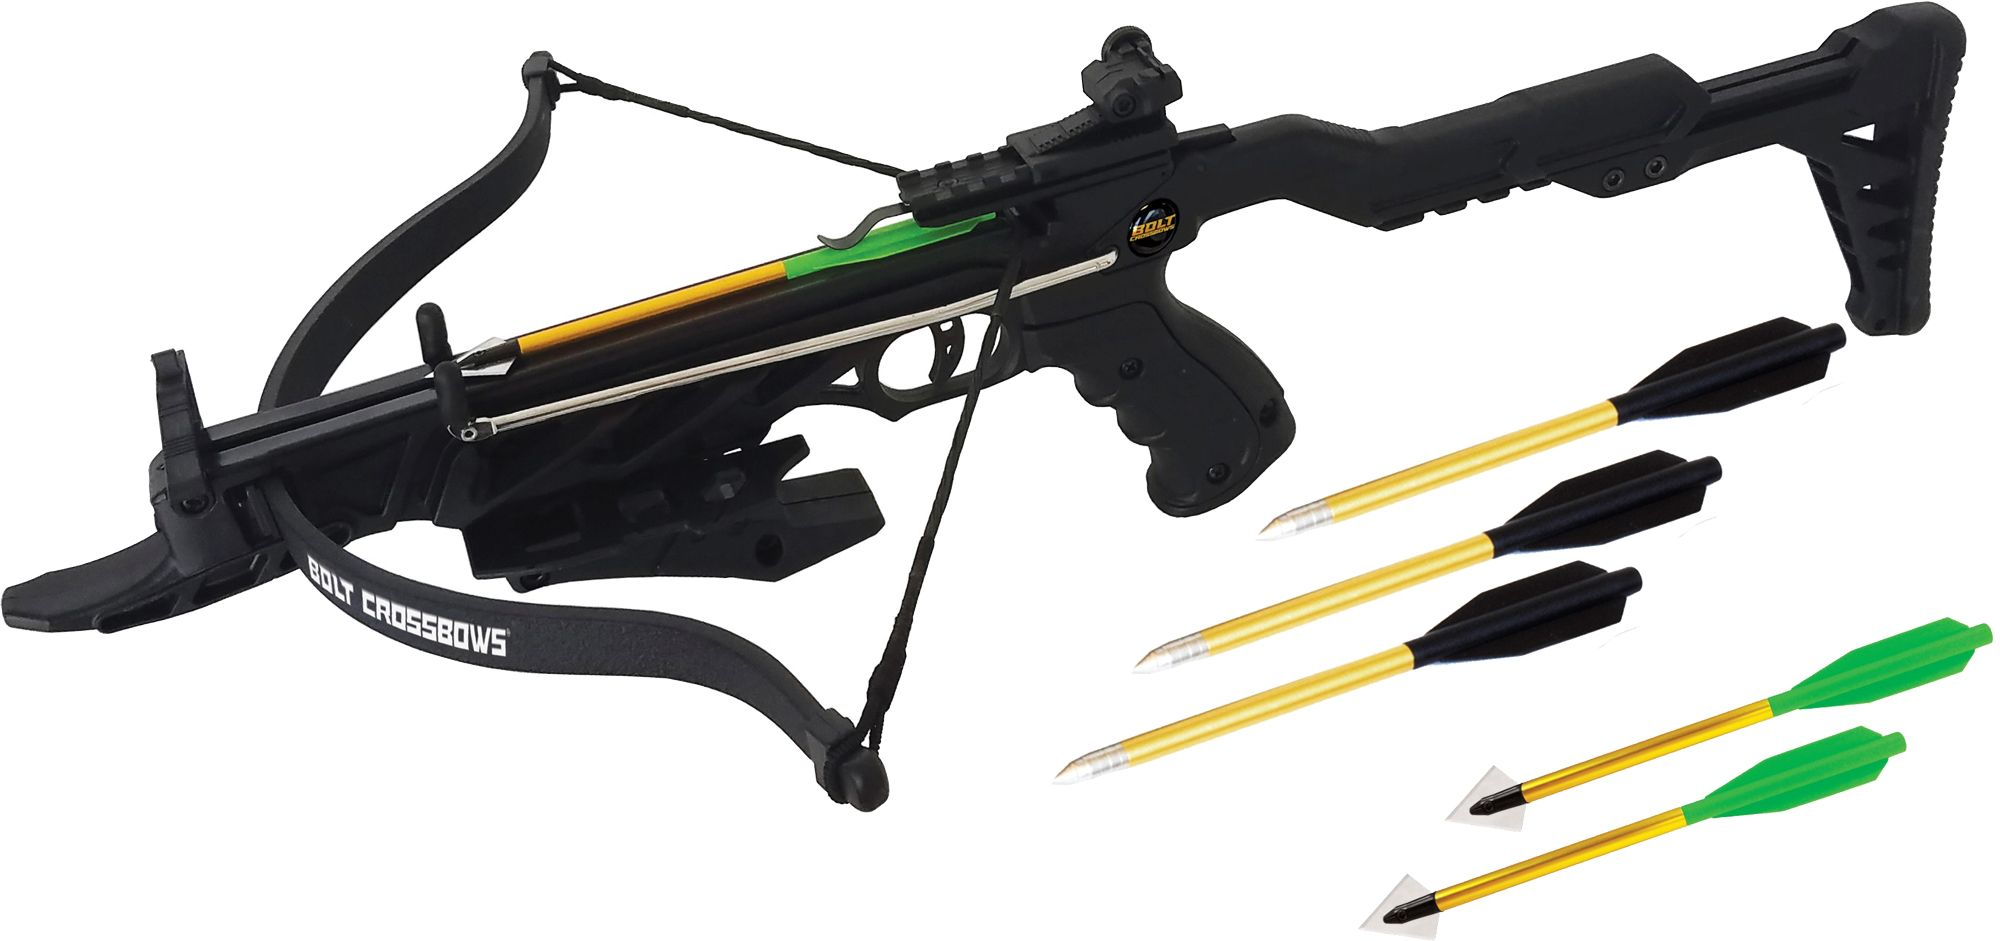 BOLT Crossbows The Shredder Power Series Youth Crossbow, Size: Small thumbnail